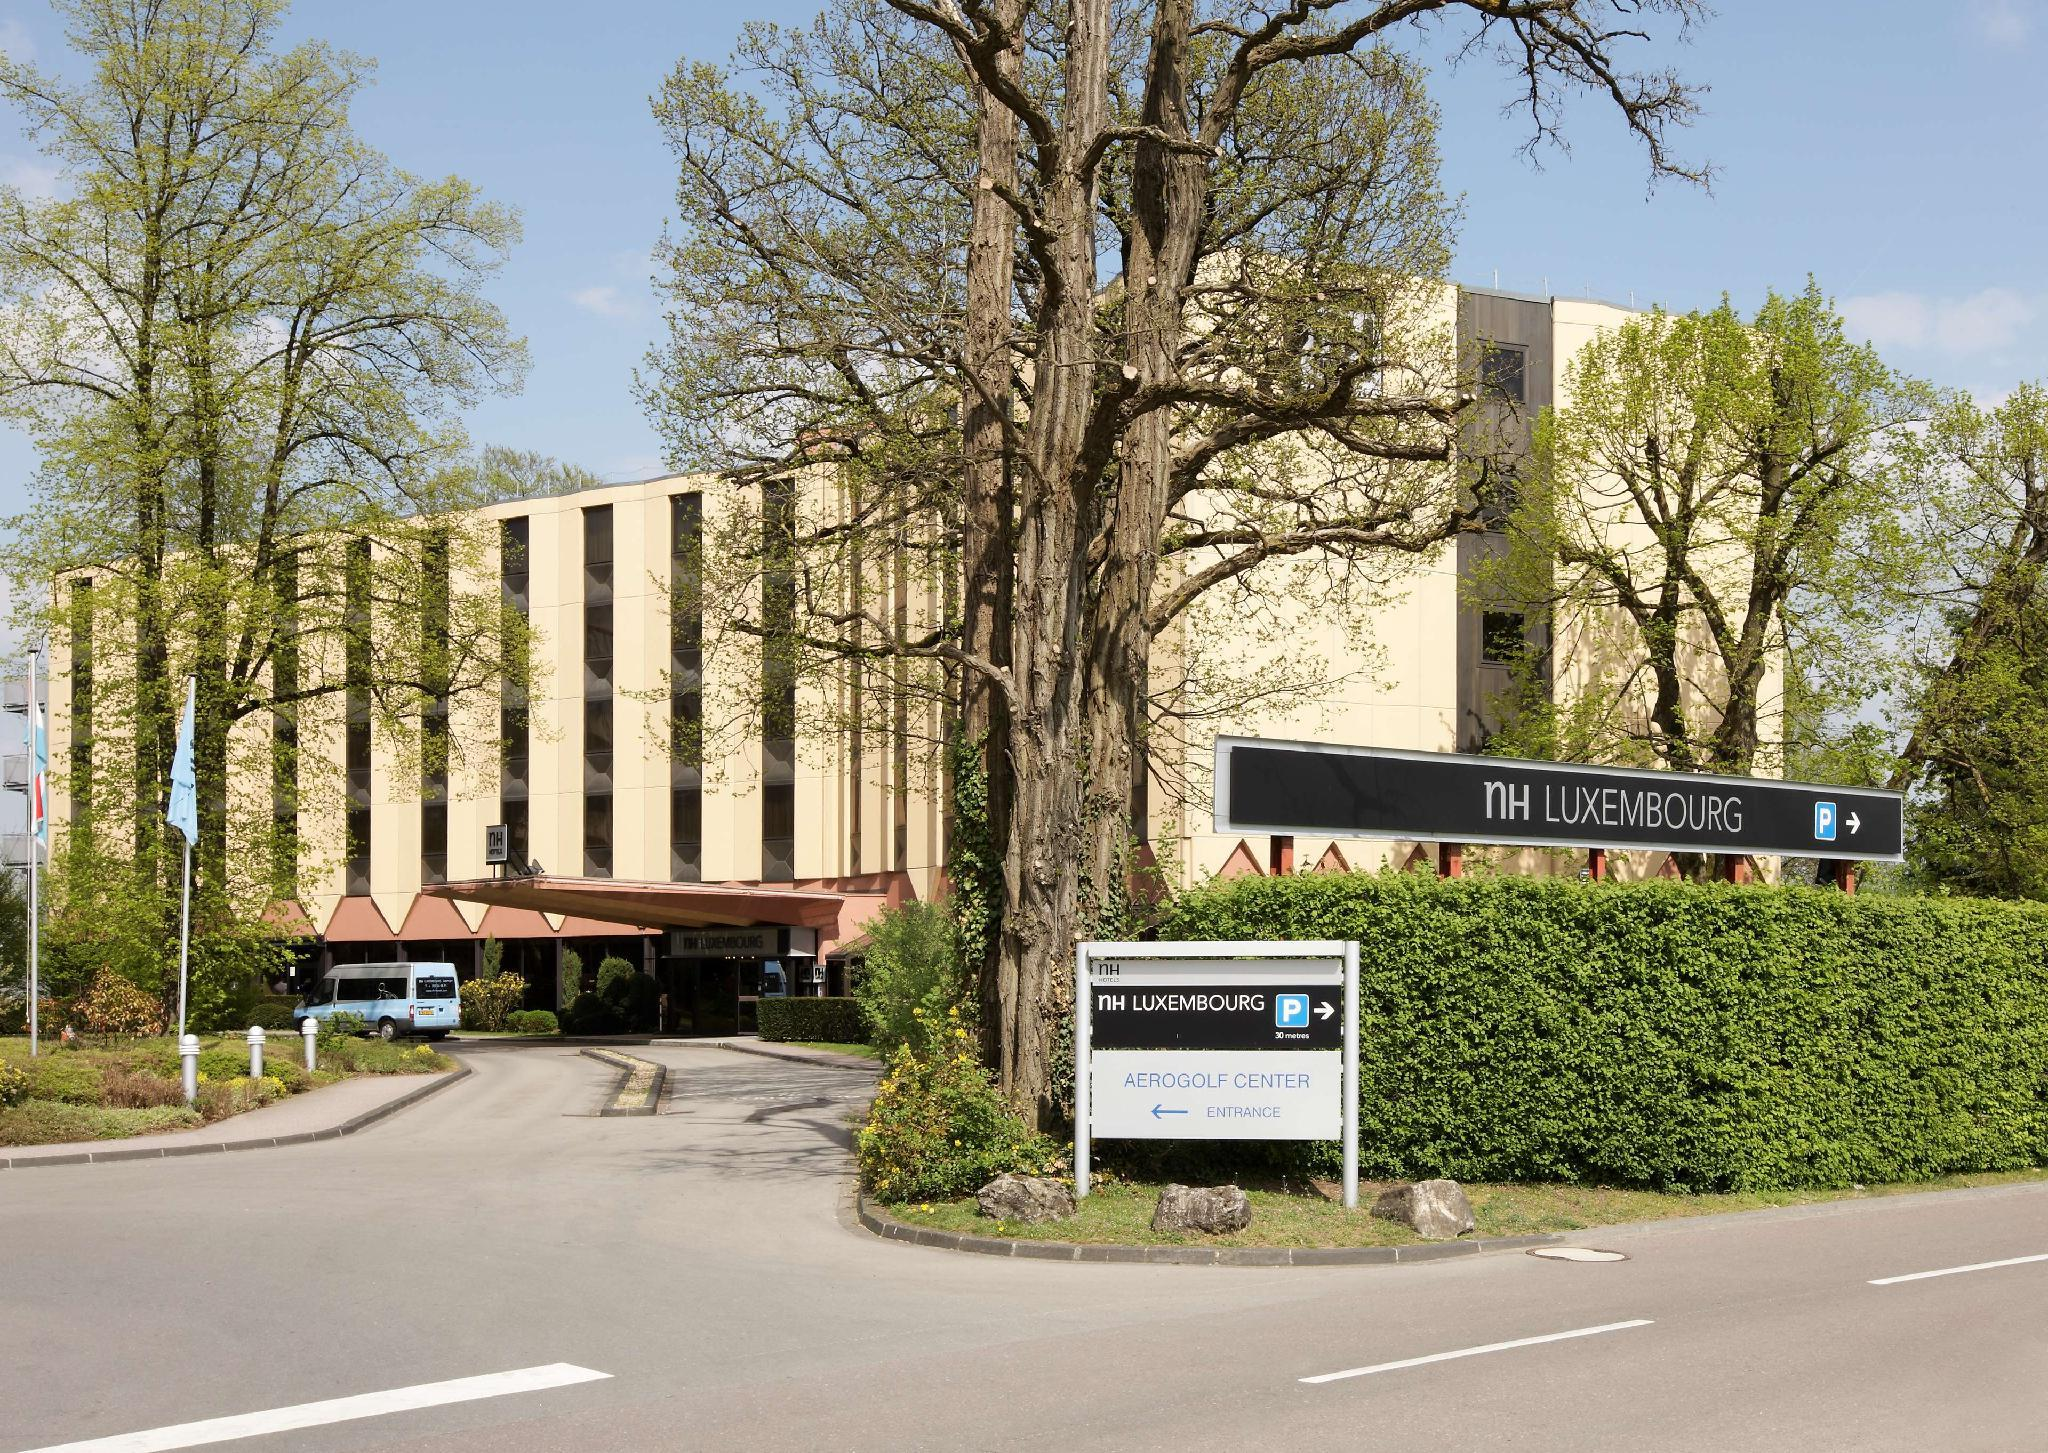 NH Luxembourg Hotel